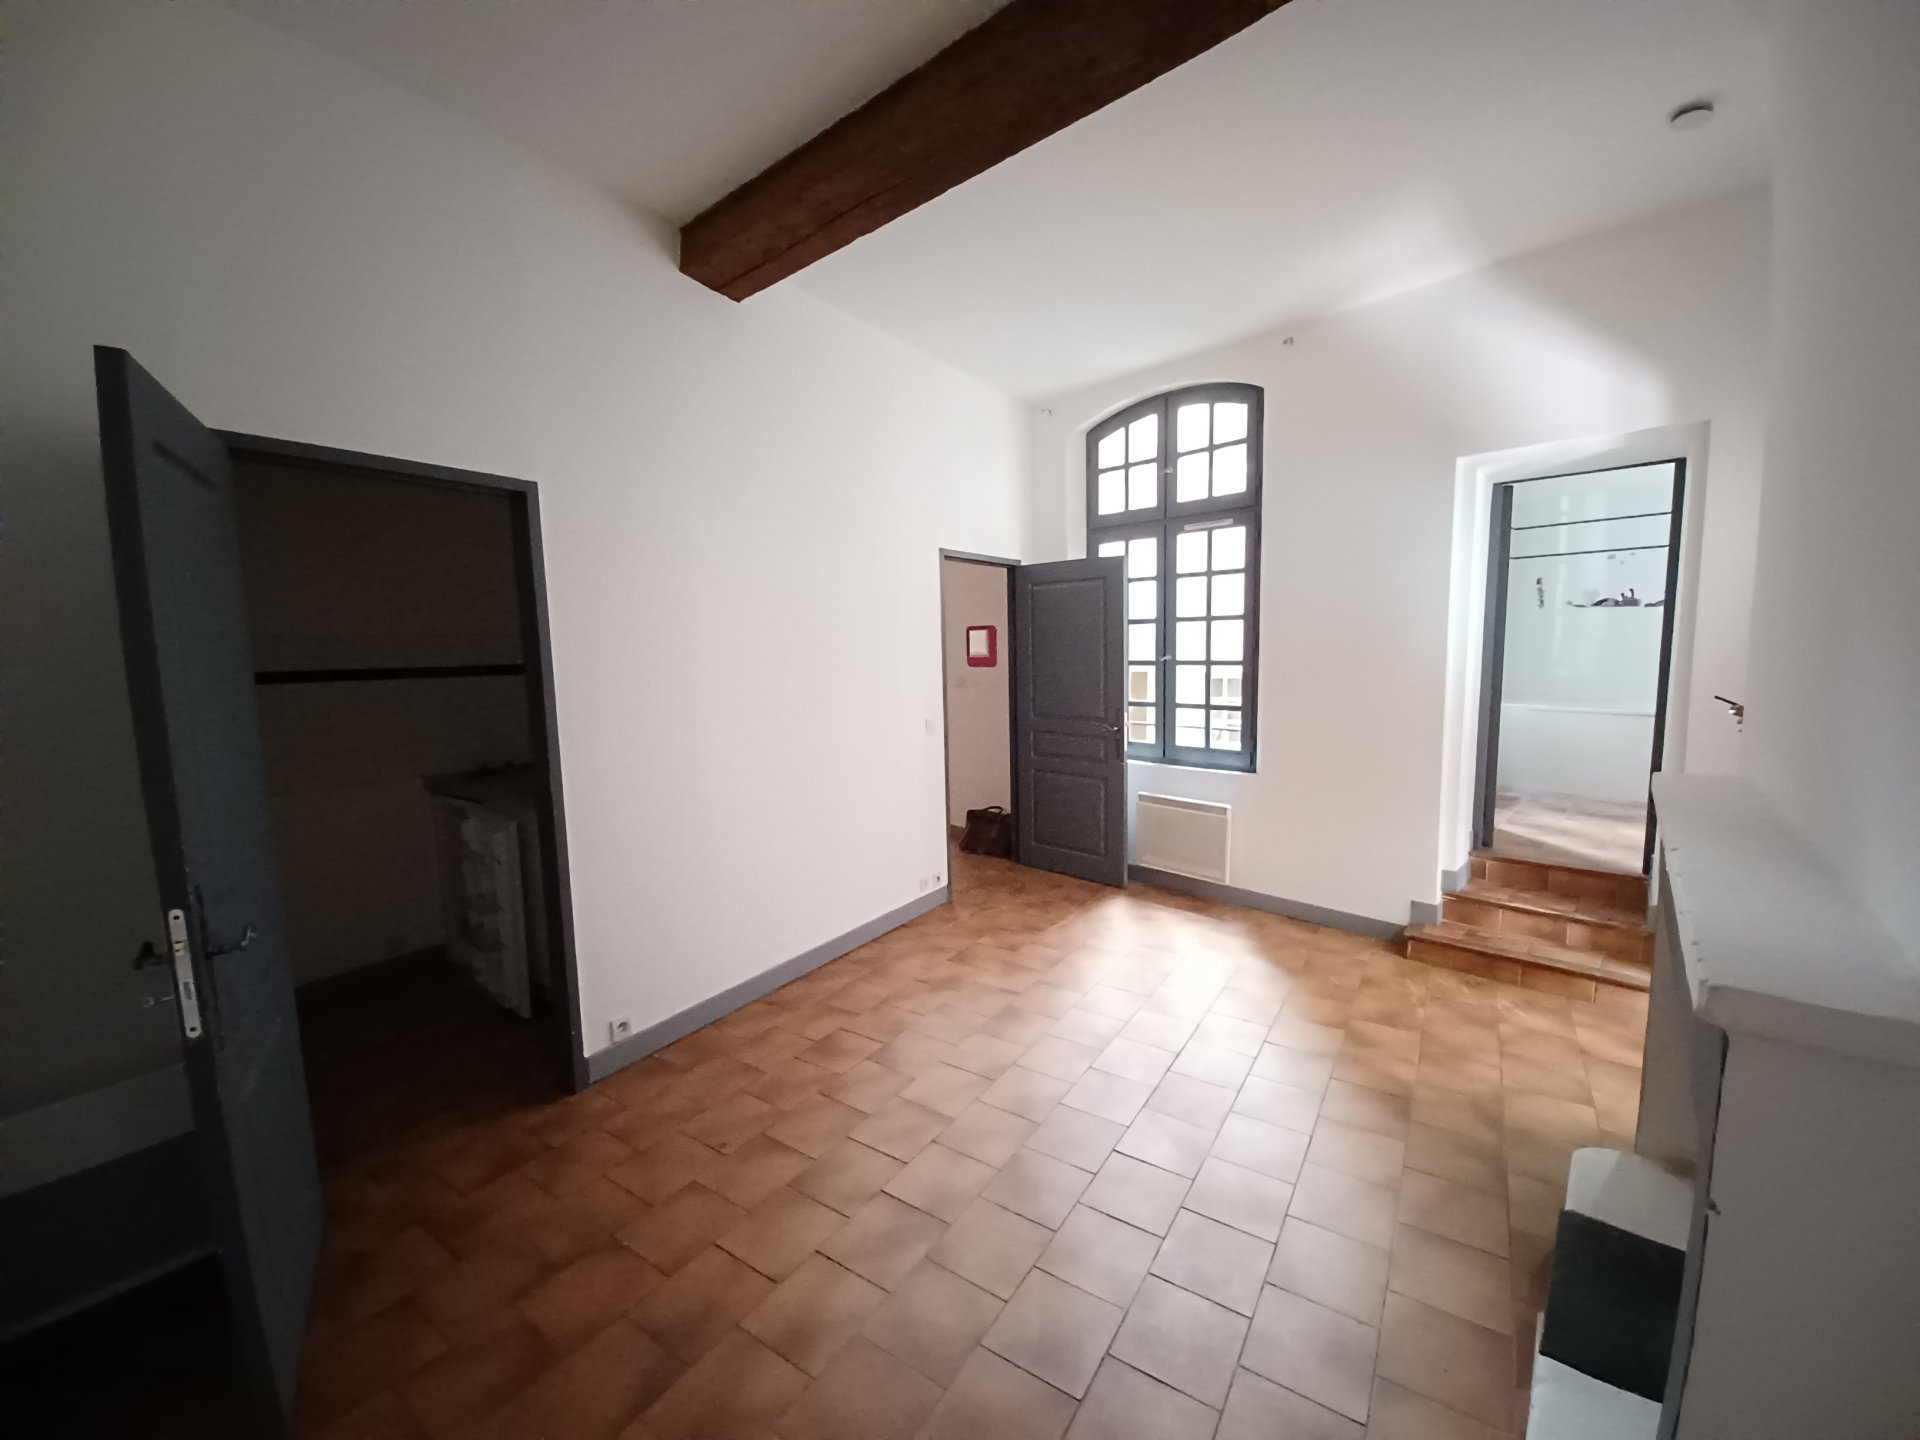 Location Appartement BEAUCAIRE 1 chambres